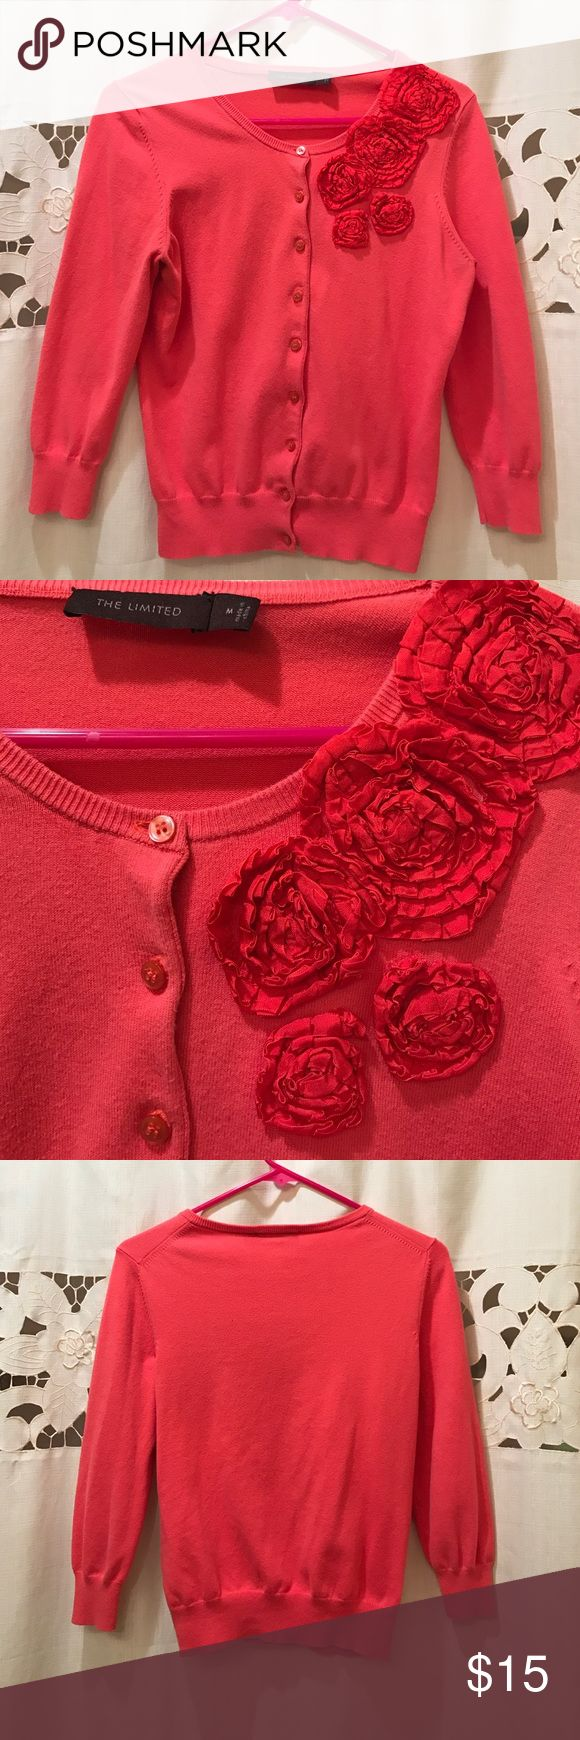 Button down coral cardigan with flower detail The Limited medium button down cardigan. Coral cardigan with red flower detail near shoulder. The Limited Sweaters Cardigans